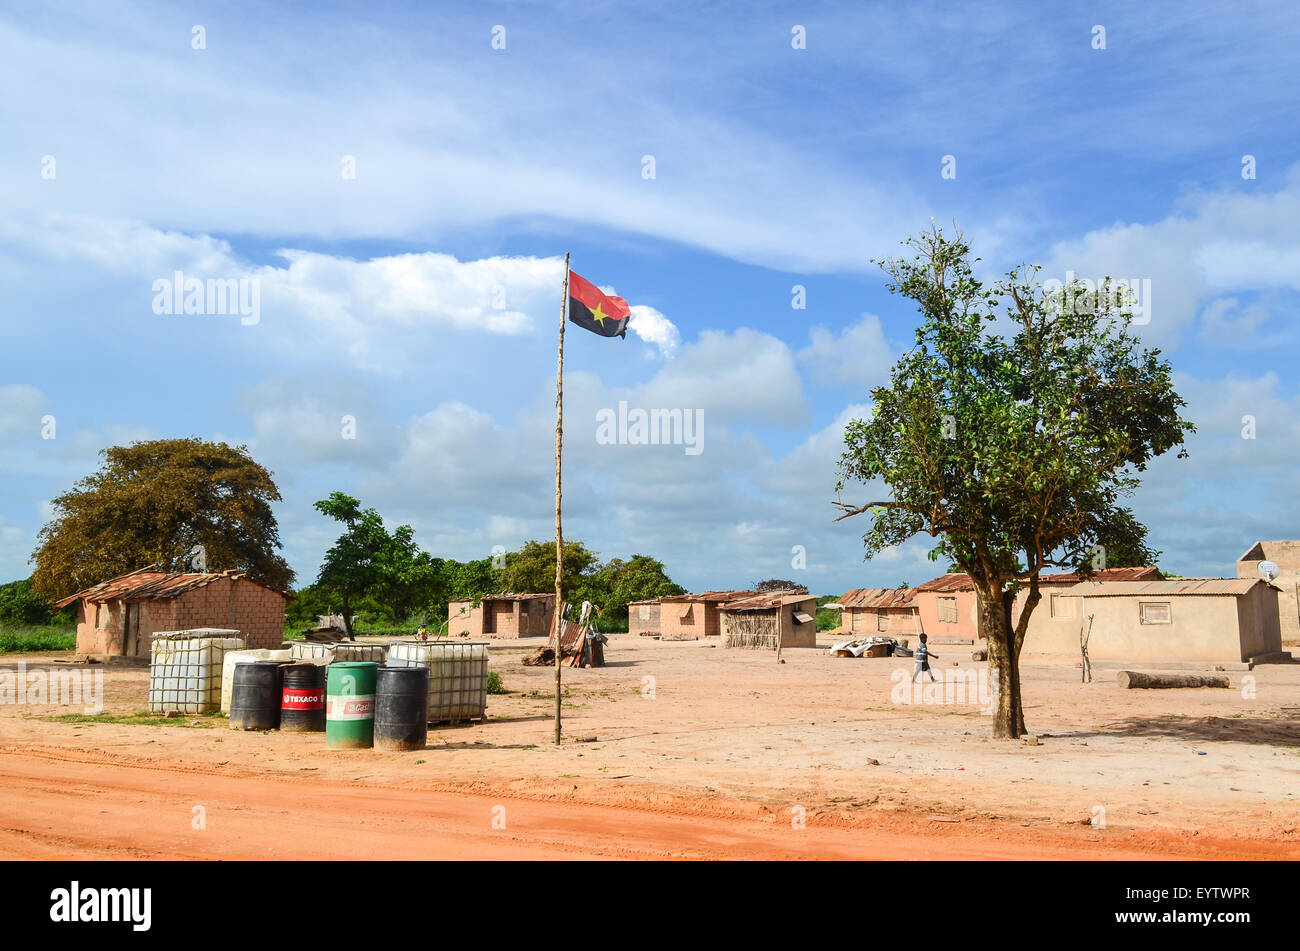 MPLA political party flag in a village in the Zaire province of Angola - Stock Image